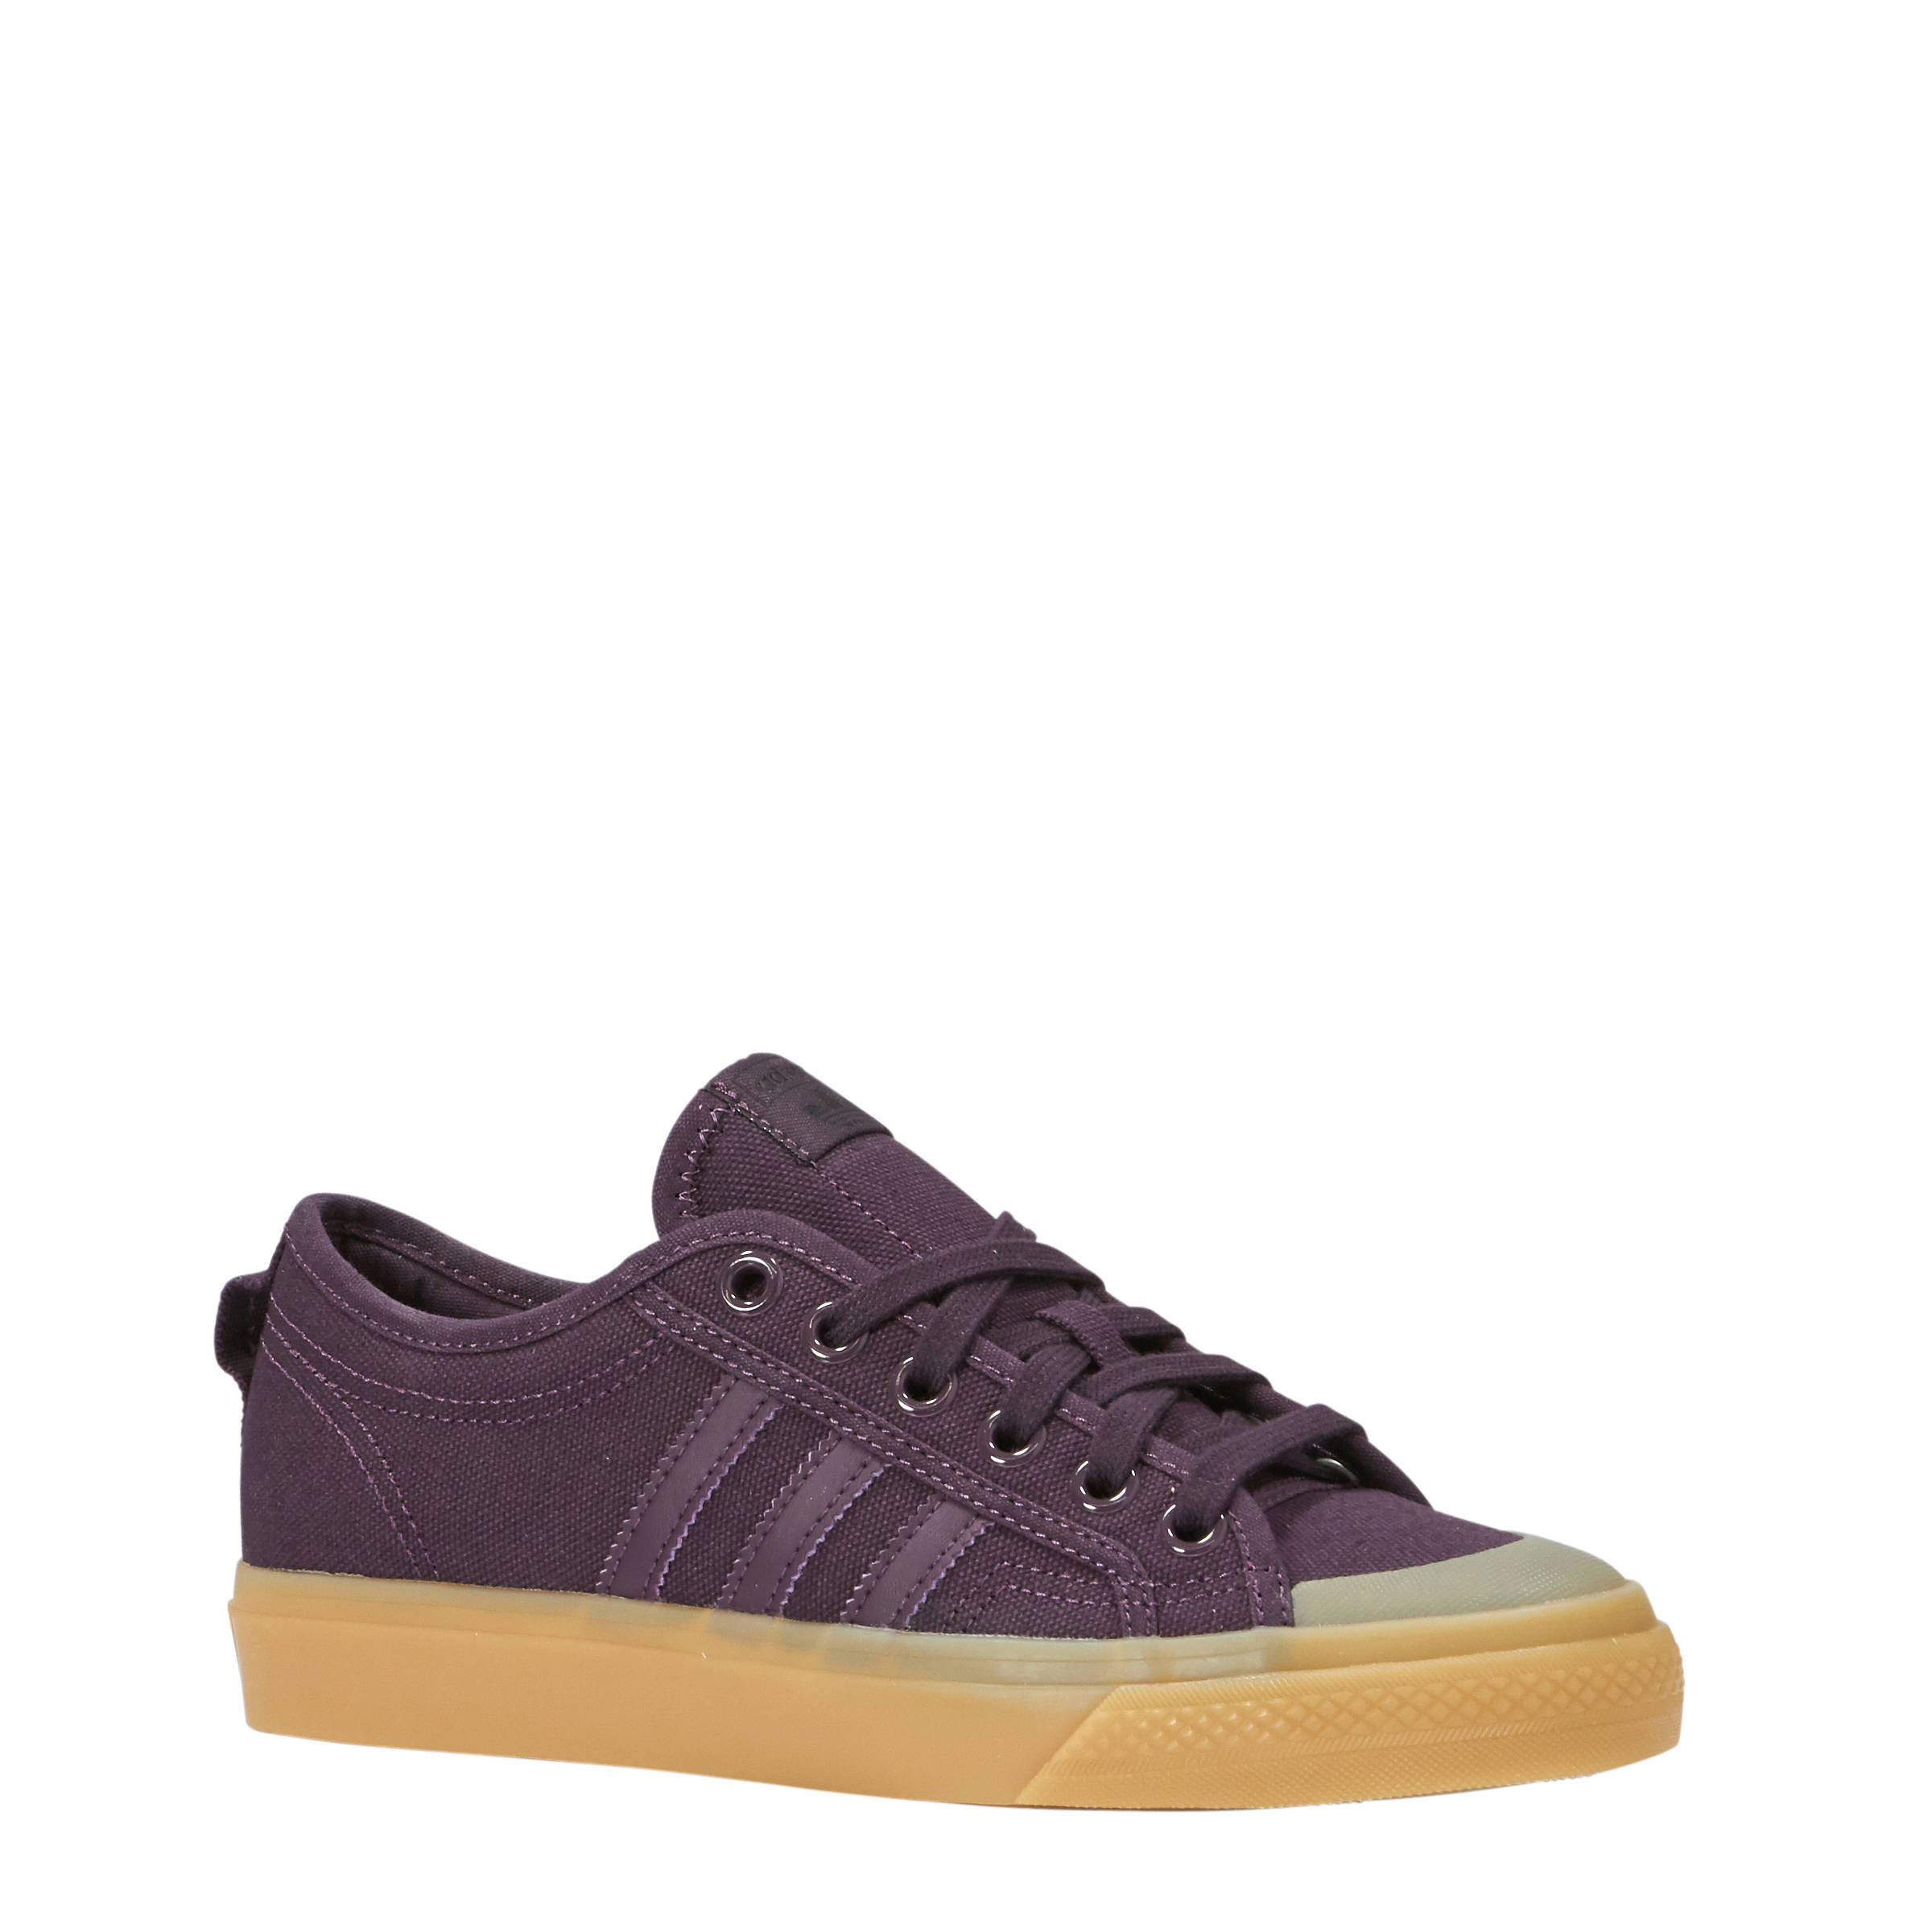 adidas sneakers dames bordeaux rood